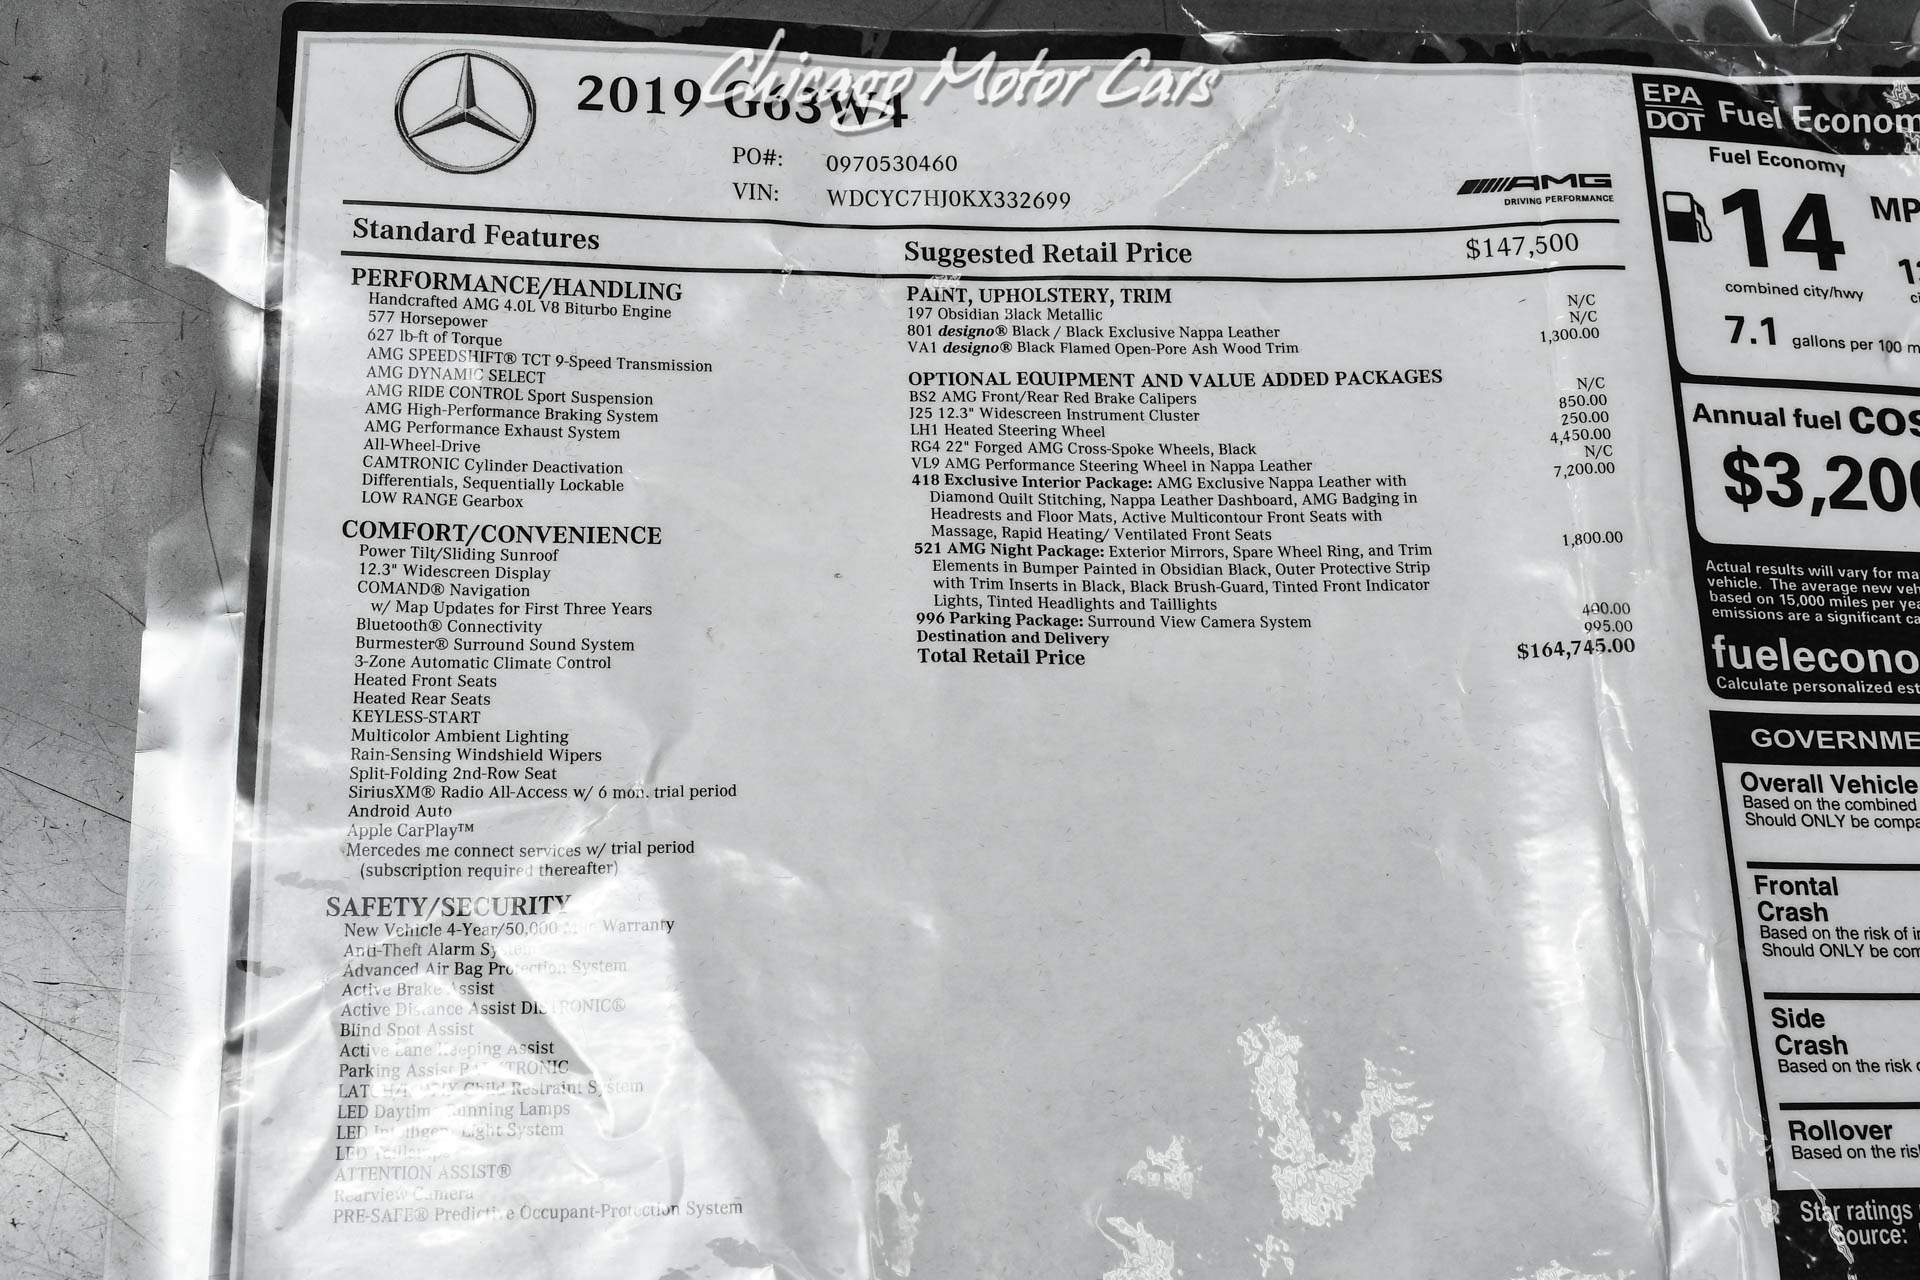 Used-2019-Mercedes-Benz-G63-AMG-4MATIC-Exclusive-Interior-Package-9k-Miles